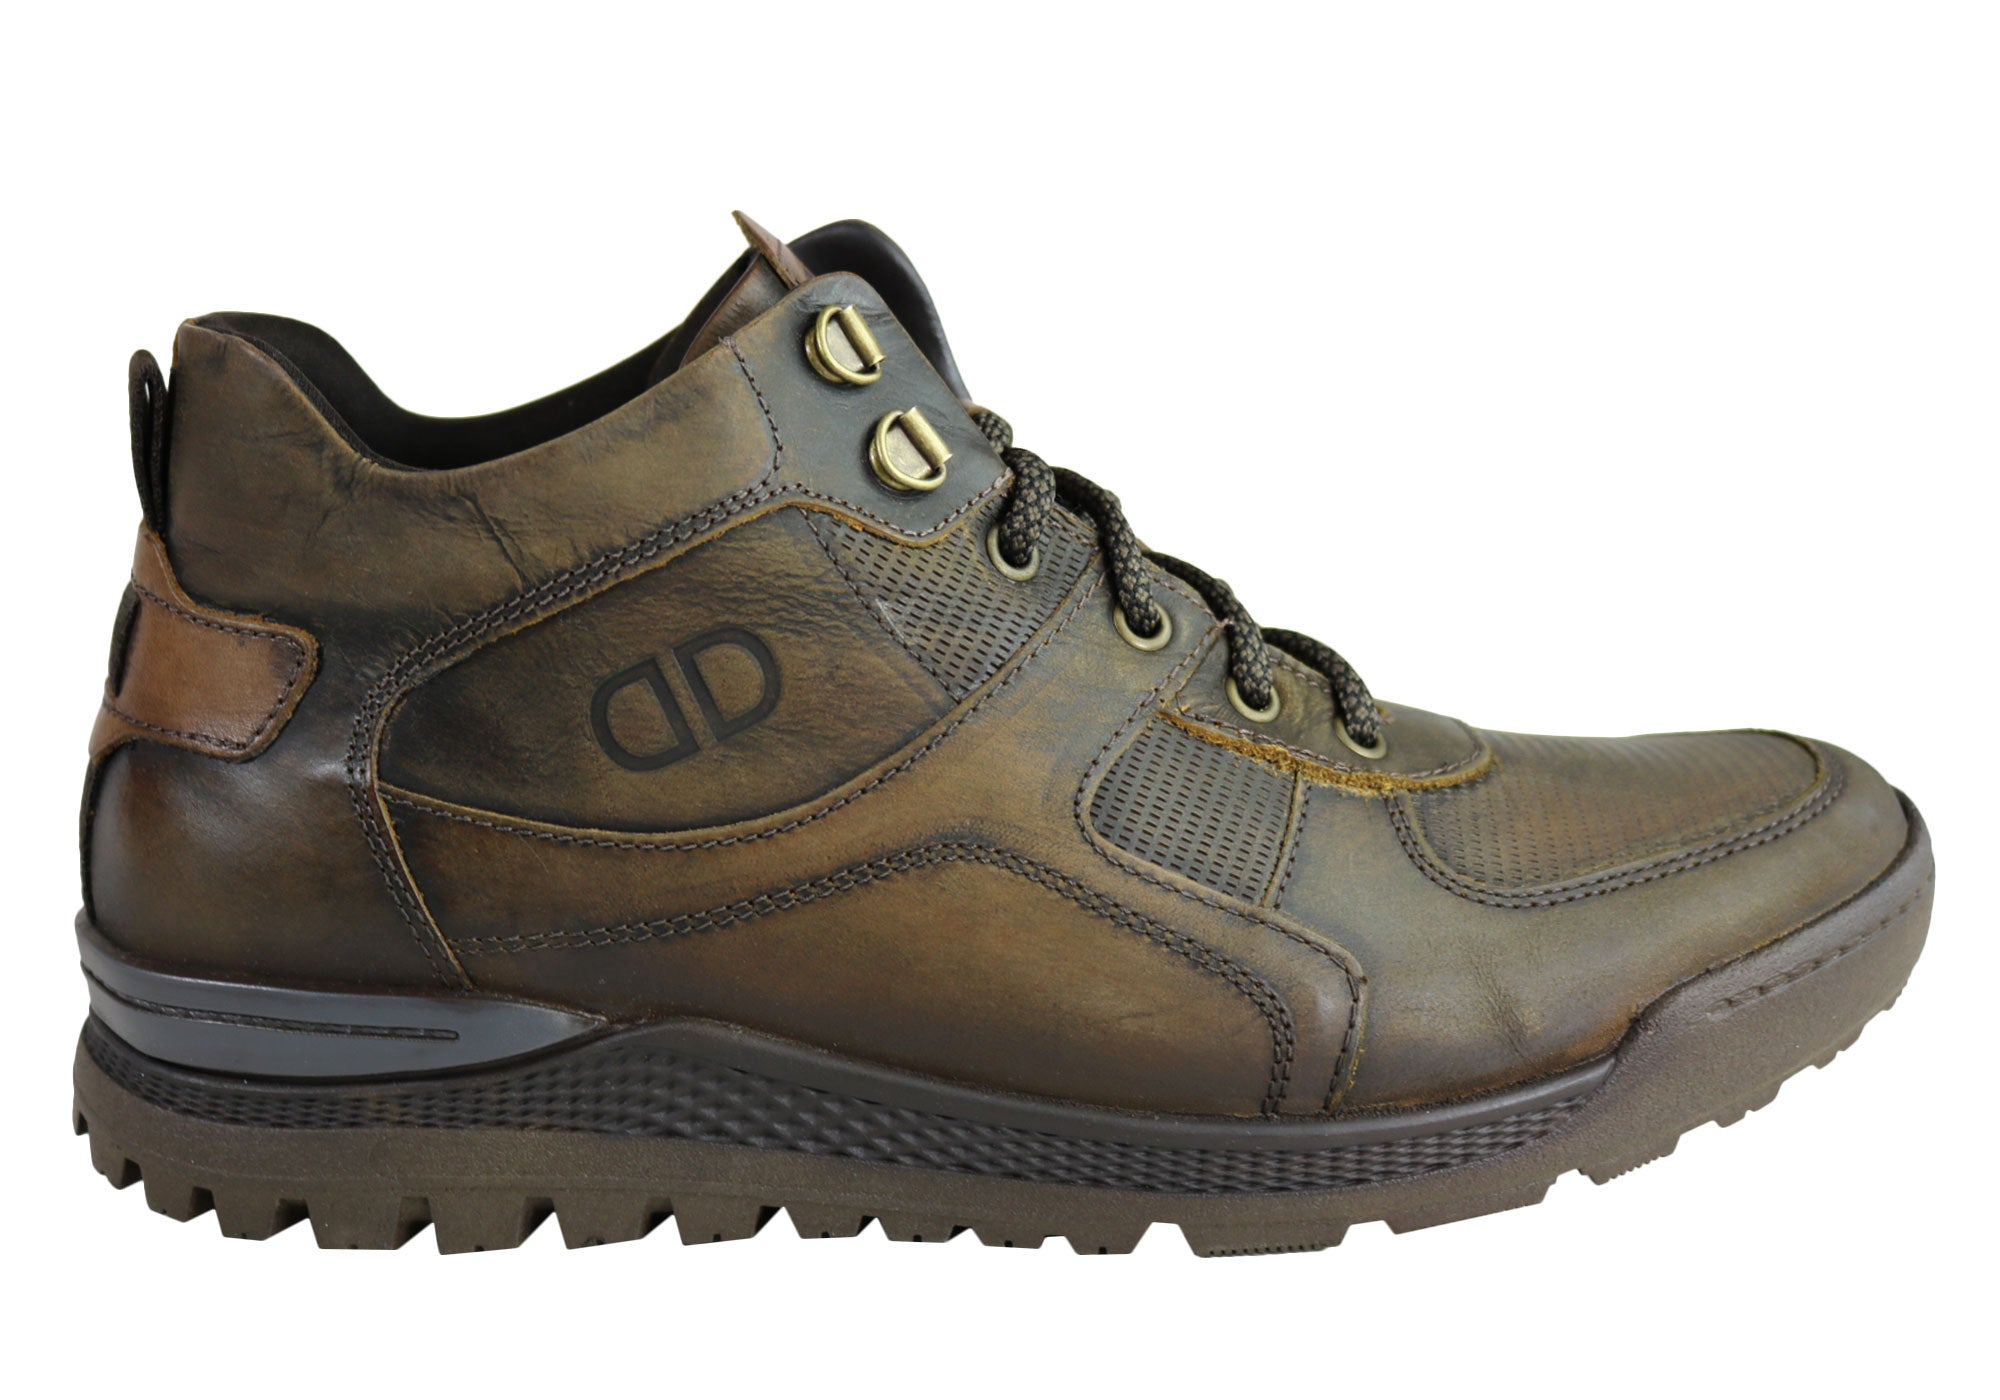 NEW-DEMOCRATA-DIEGO-MENS-LEATHER-LACE-UP-DRESS-BOOTS-MADE-IN-BRAZIL thumbnail 9